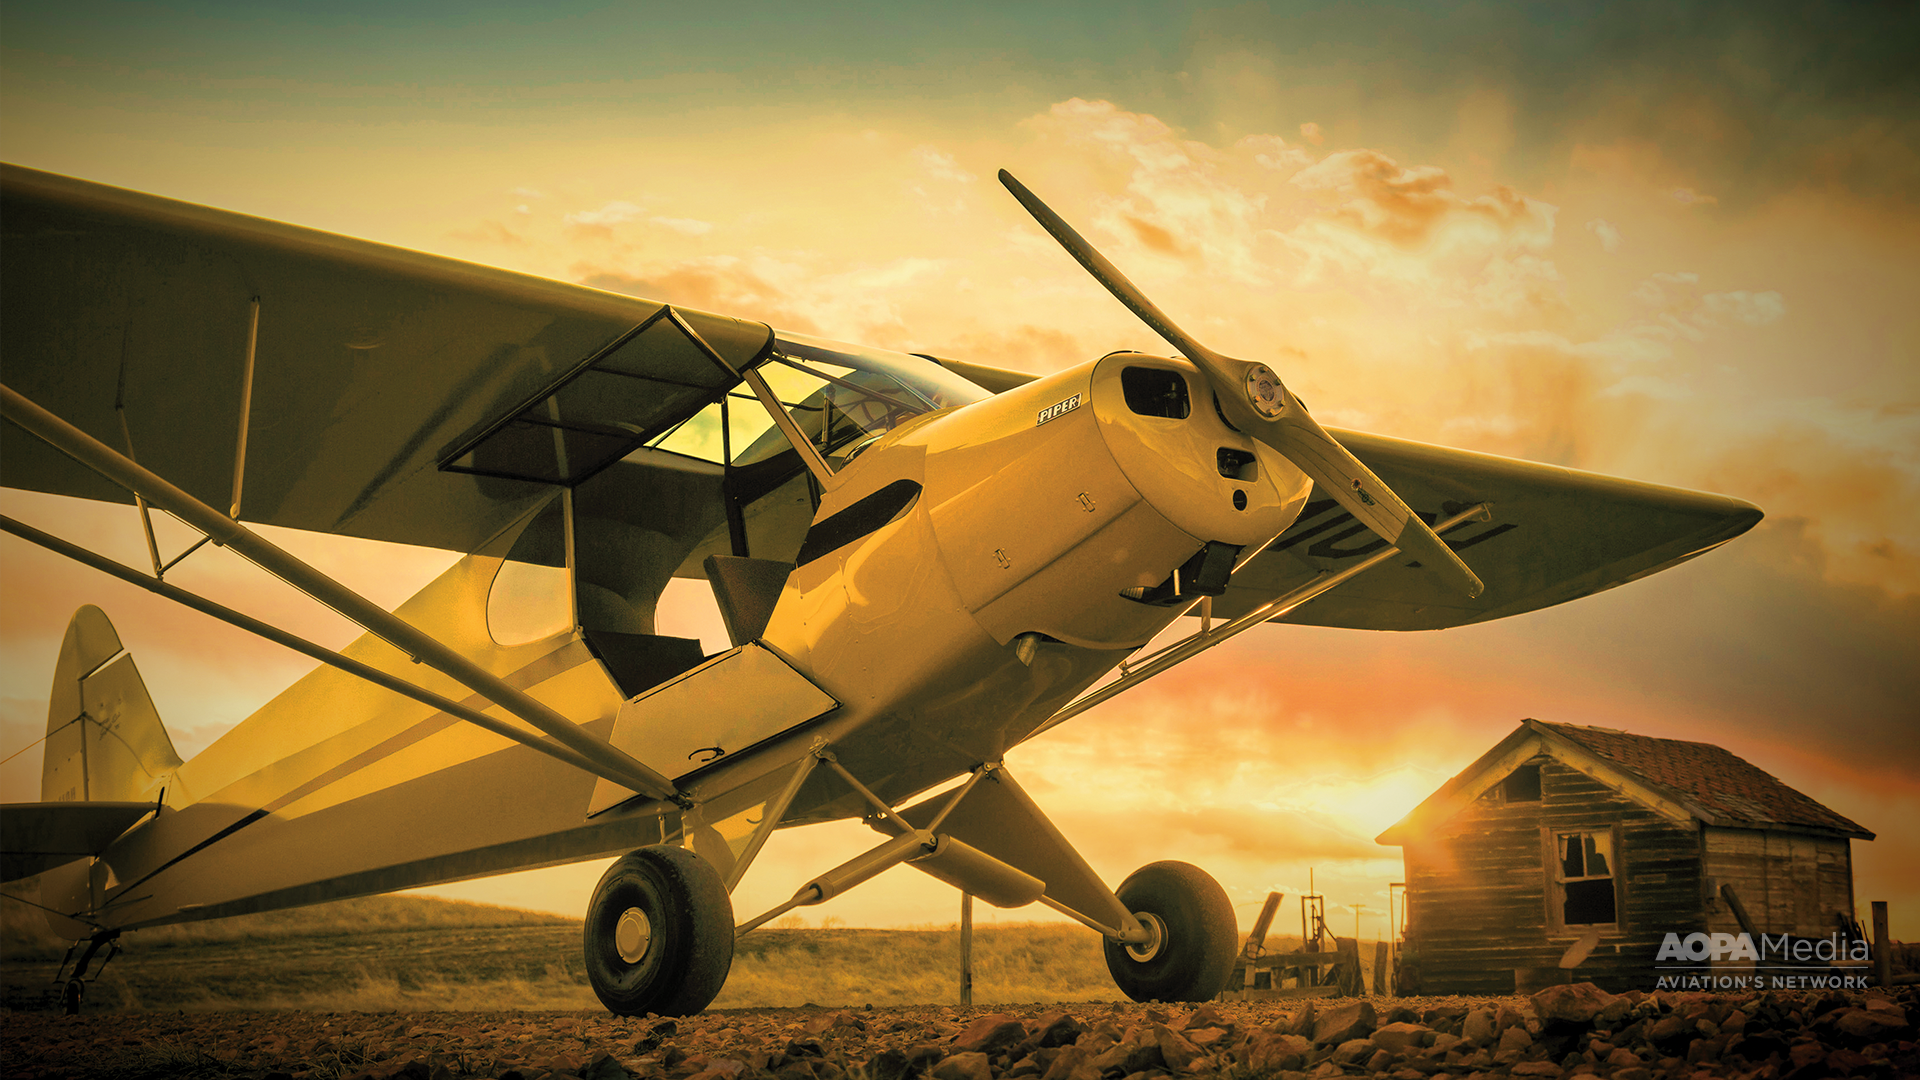 piper aircraft wallpaper the - photo #4